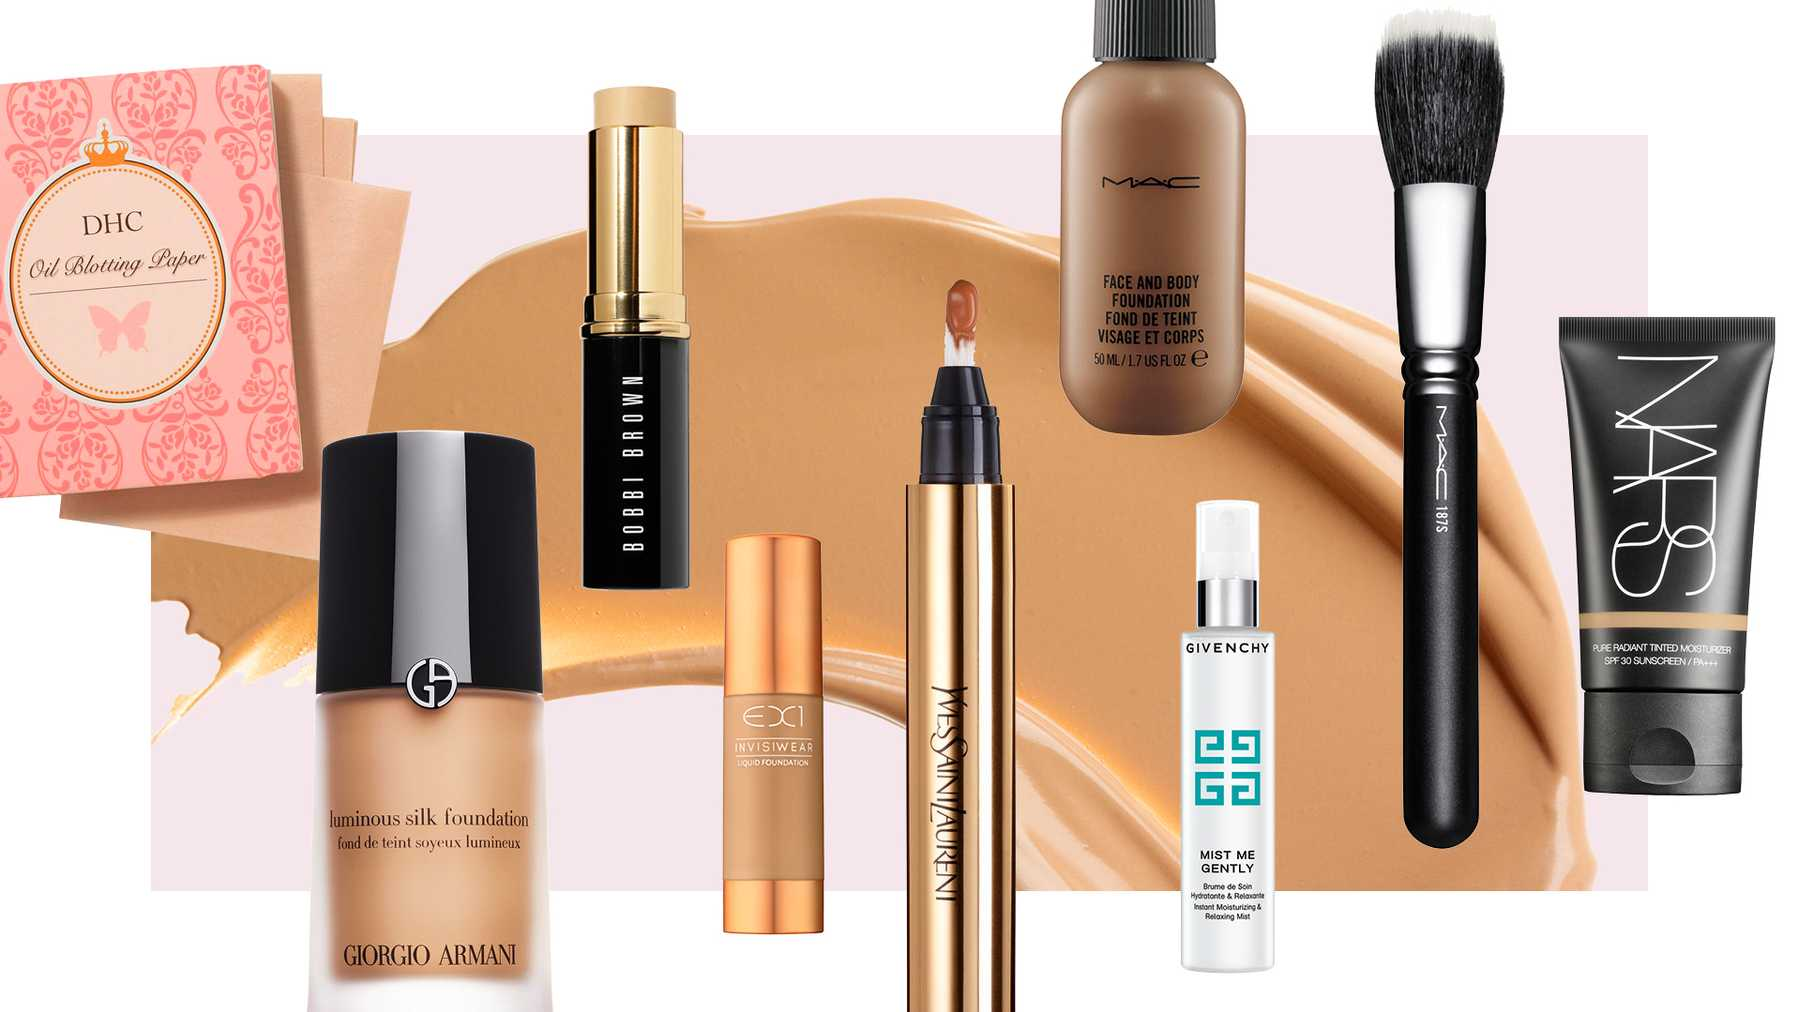 To Help Save You Time And Sanity We Have Narrowed Down The Best Foundation Picks For